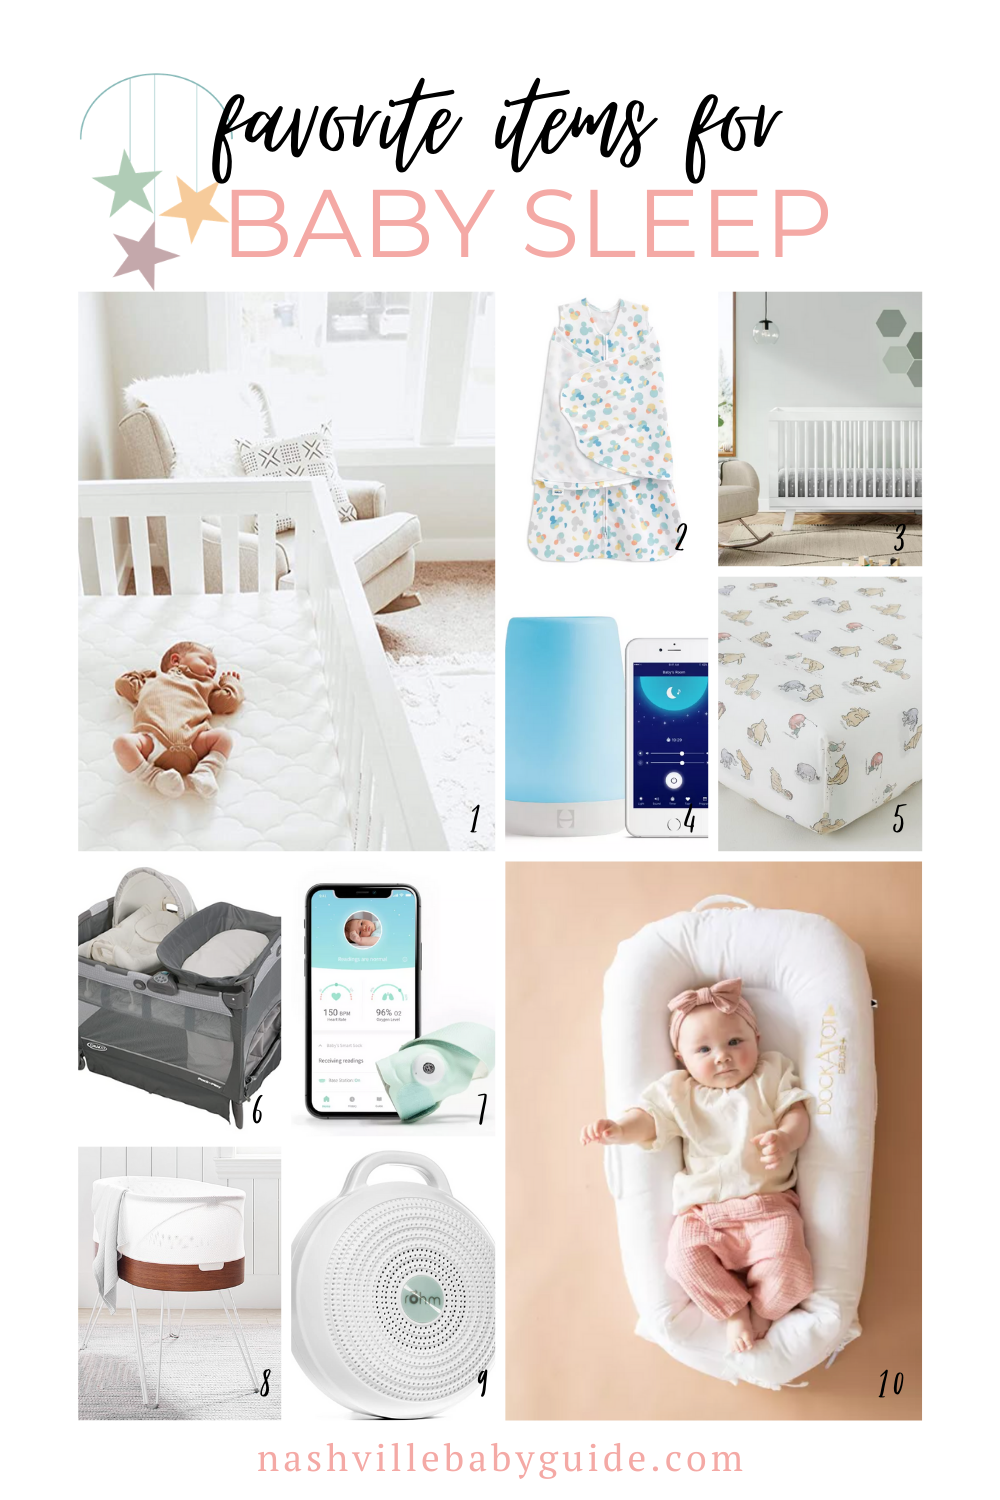 Our Favorite Items for Baby's Sleep | Nashville Baby Guide